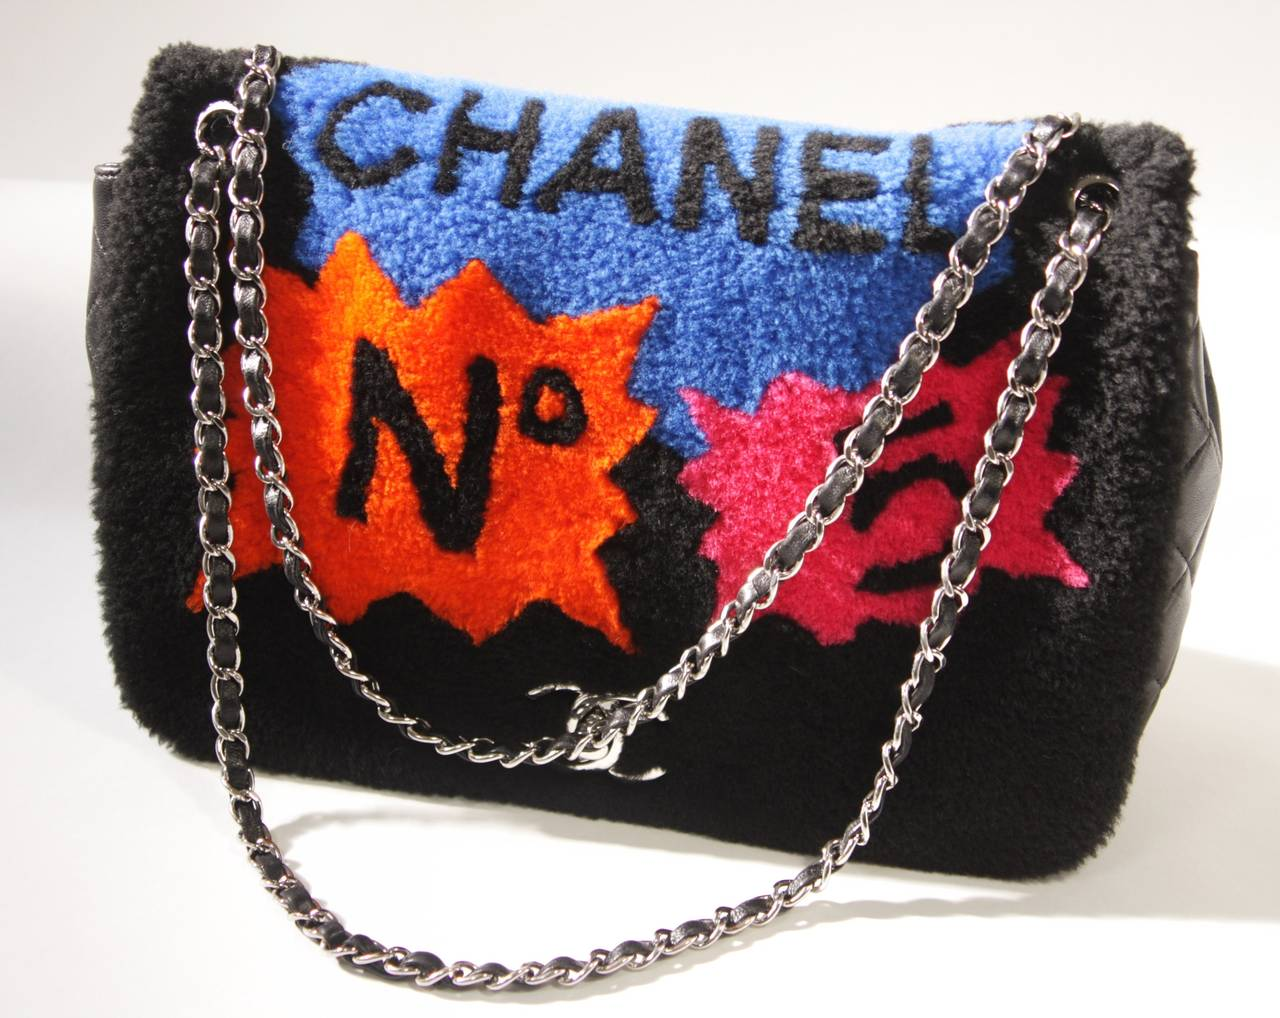 This is a Chanel design. The handbag features Chanel's classic silhouette, but is designed with a twist. The upper part of the purse is composed of a dyed black shearling with comic strip style pops of color debuting Chanel logos and branding. This